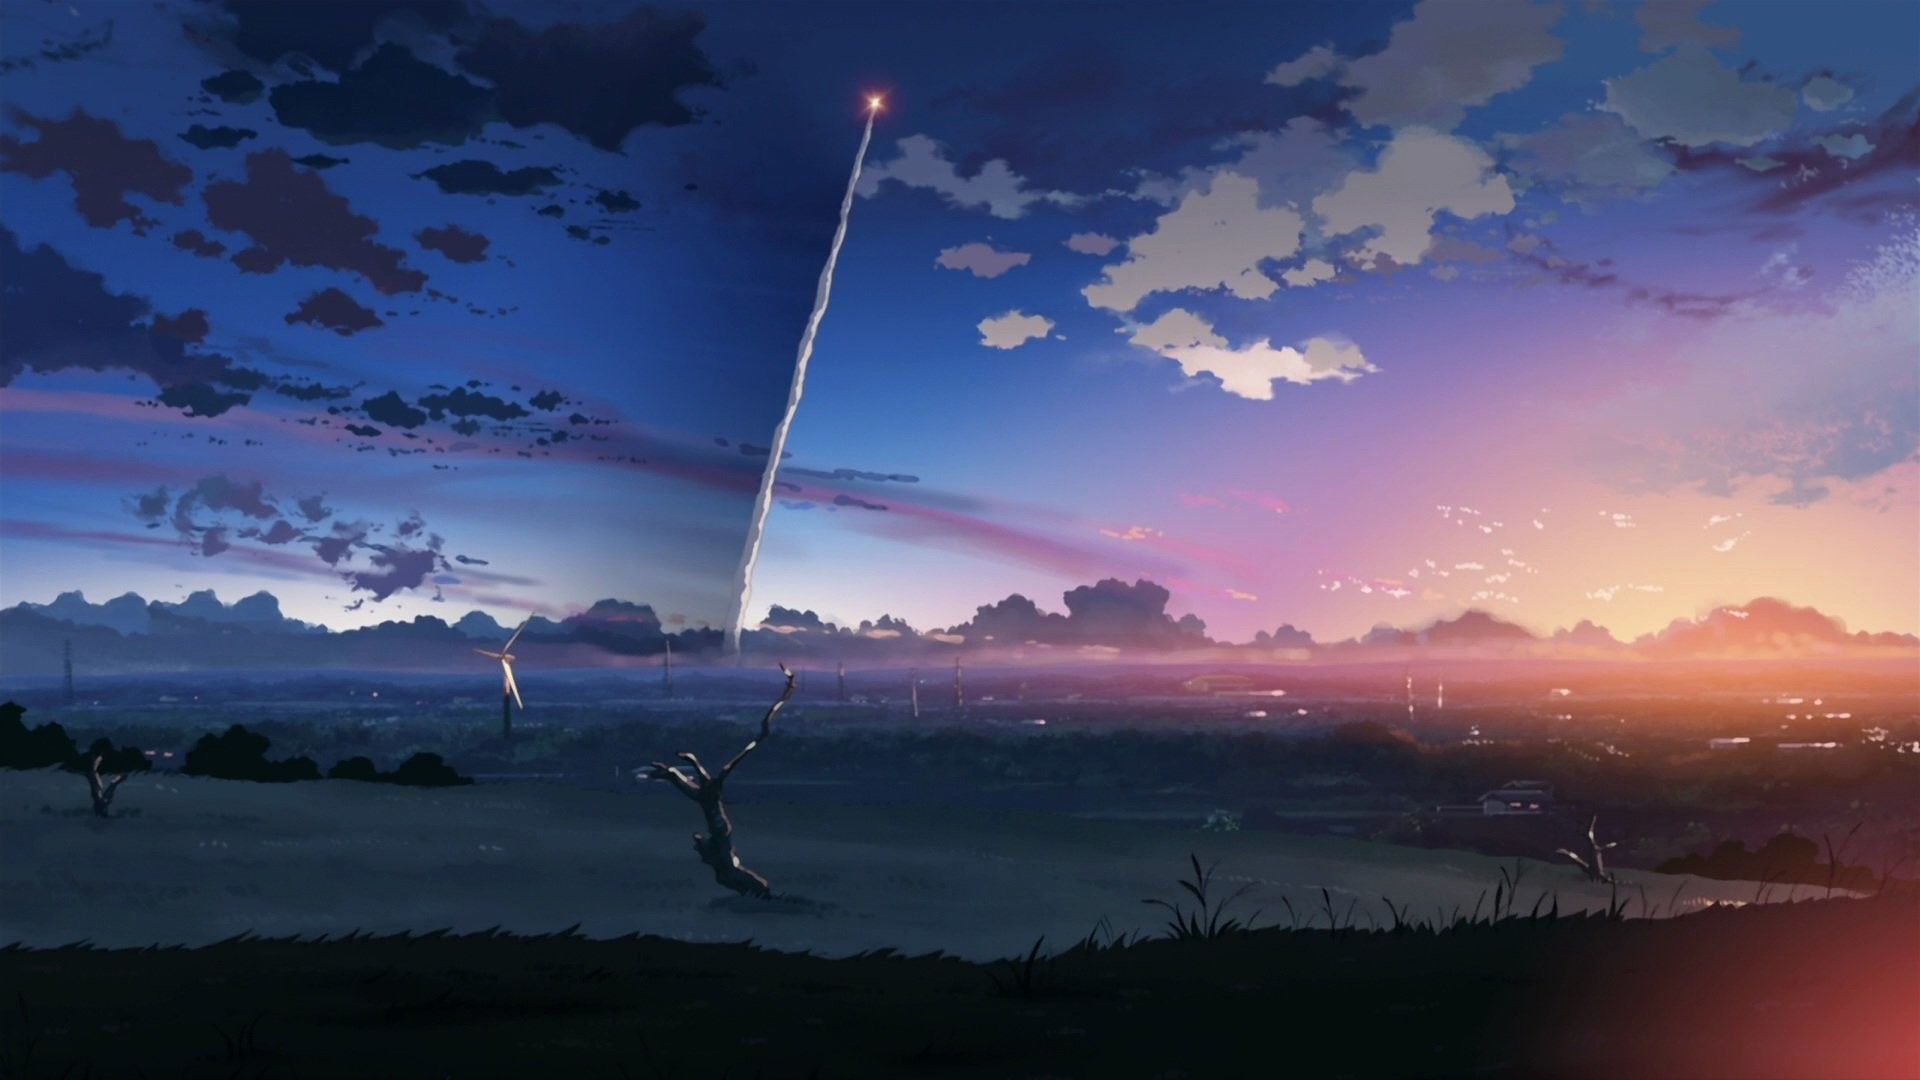 1920x1080 Anime - 5 Centimeters Per Second Centimeters Second Anime Wallpaper